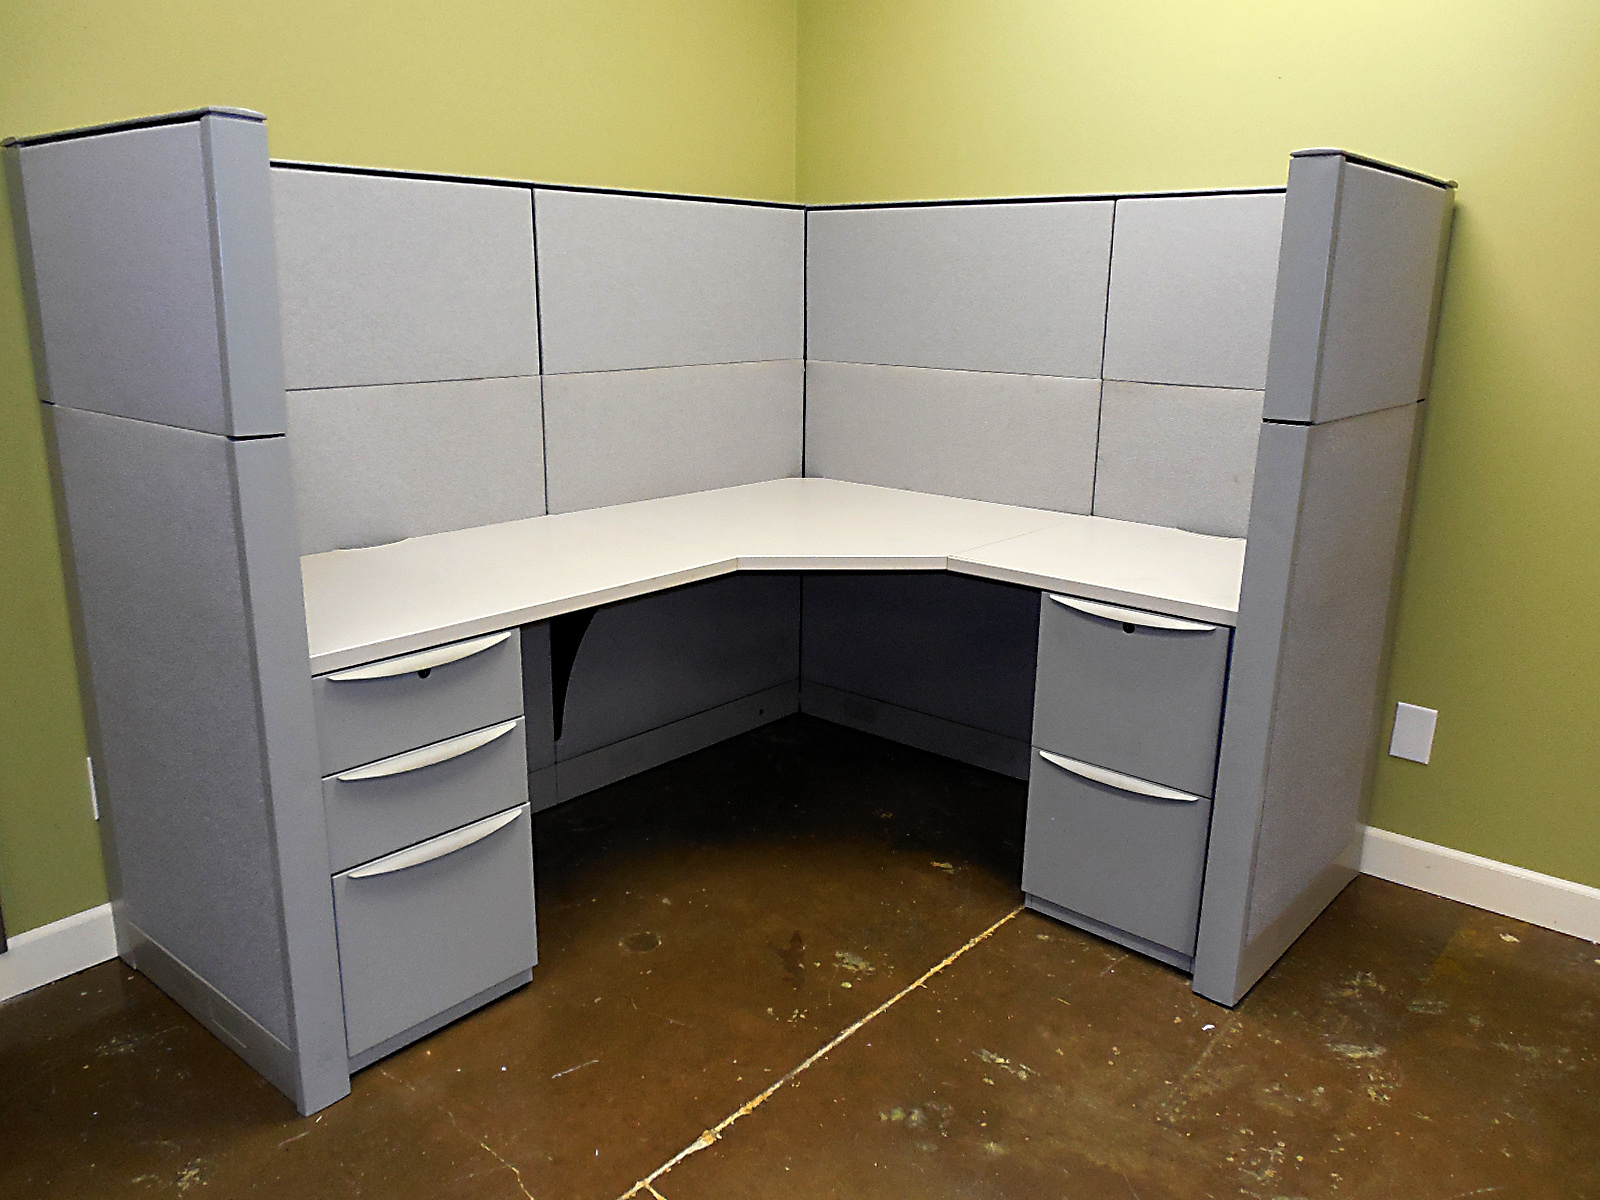 Used Haworth Premise Cubicles 6x5 Used Cubicles